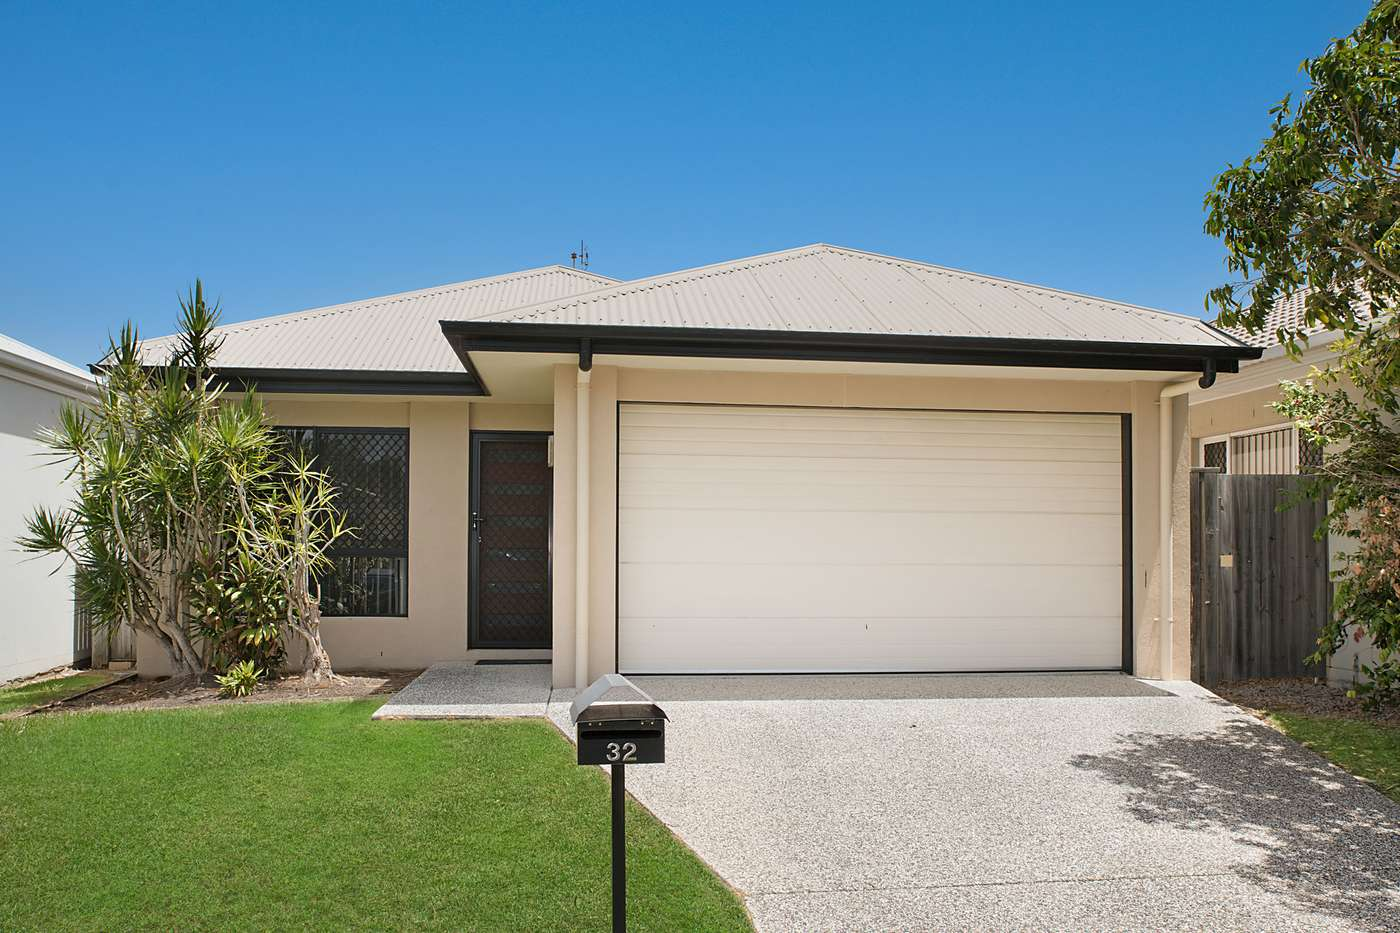 Main view of Homely house listing, 32 Feathertop Circuit, Caloundra West, QLD 4551